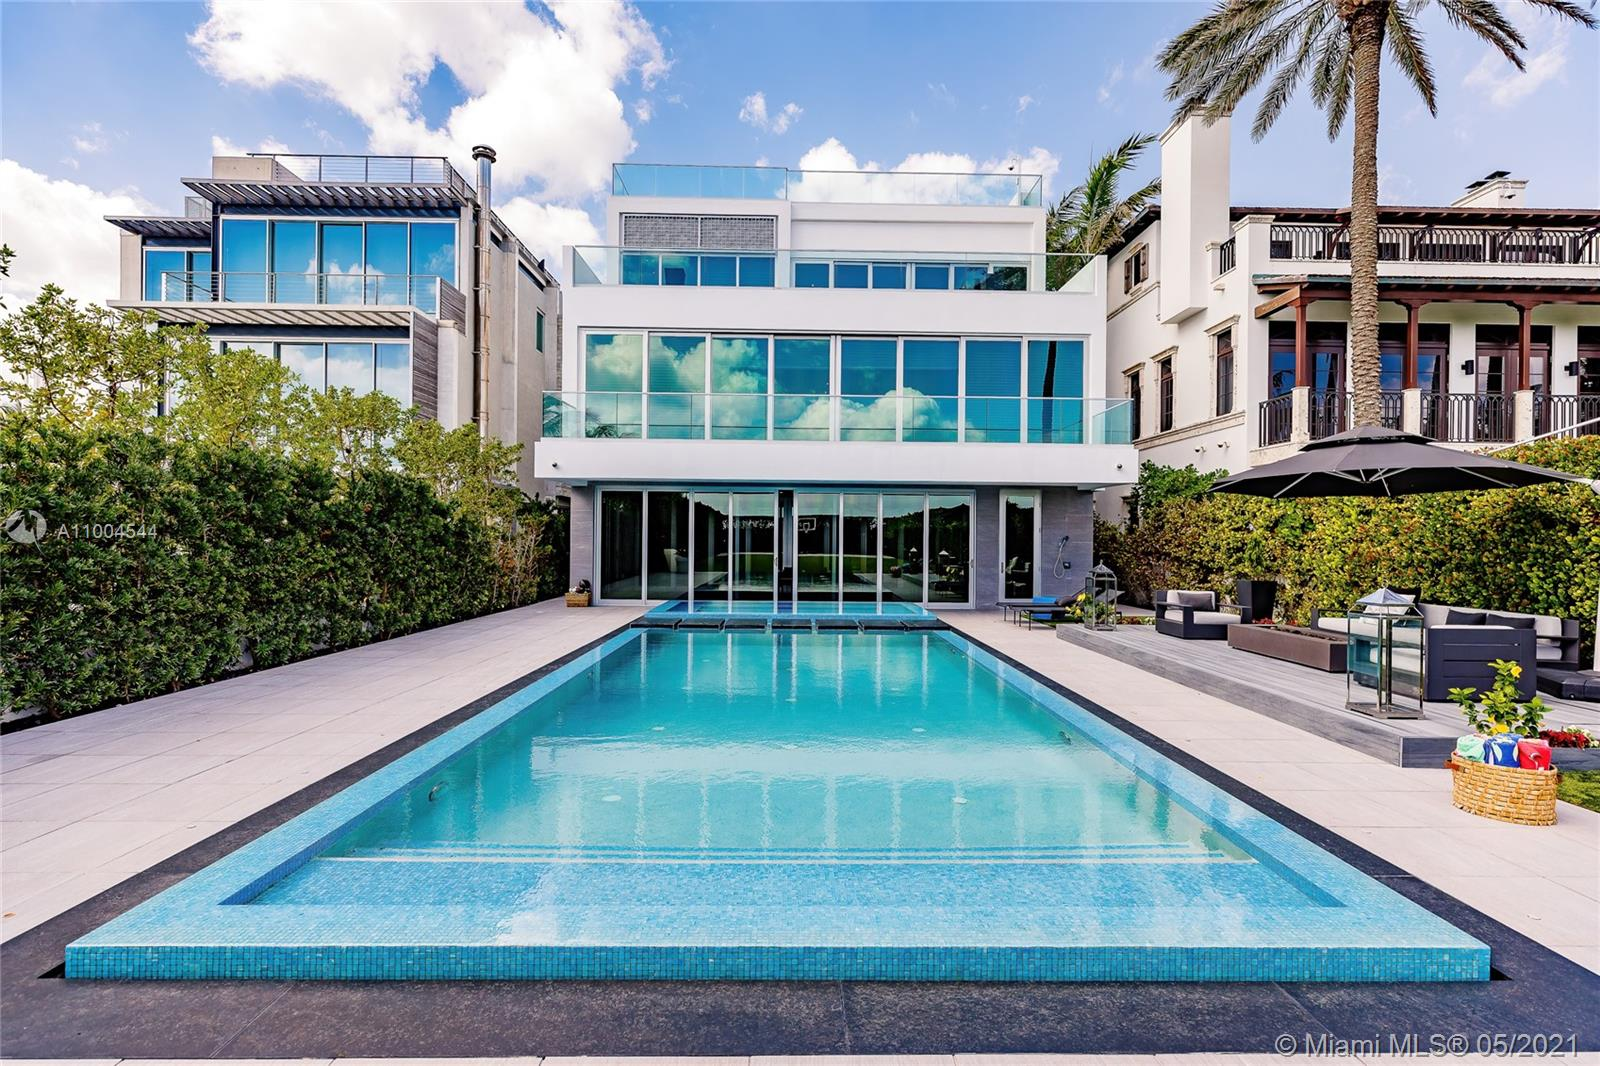 Enter to ONE OF A KIND home in the white sandy beaches of the Atlantic Ocean of Miami. The exclusive community of Altos Del Mar is centrally located surrounded by restaurants, minutes from the exclusive Bal Harbour Shops. This 3-stories+terrace offers the celebrity lifestyle, full amenities Home. Attention to the details, newly built 2017. 1st floor features home theater, bar, office, family room, floor-ceiling sliding glass doors opening to a summer kitchen, heated pool, jacuzzi, cabana, and large manicured fenced backyard with its own Basketball court. 2nd level grand entertaining room w/ fireplace, custom-built kitchen, wine cellar, walls of glass onto large terrace. A pathway leads you to the four bedrooms suite. 3rd floor owner master suite w/ a private terrace overlooking the ocean.